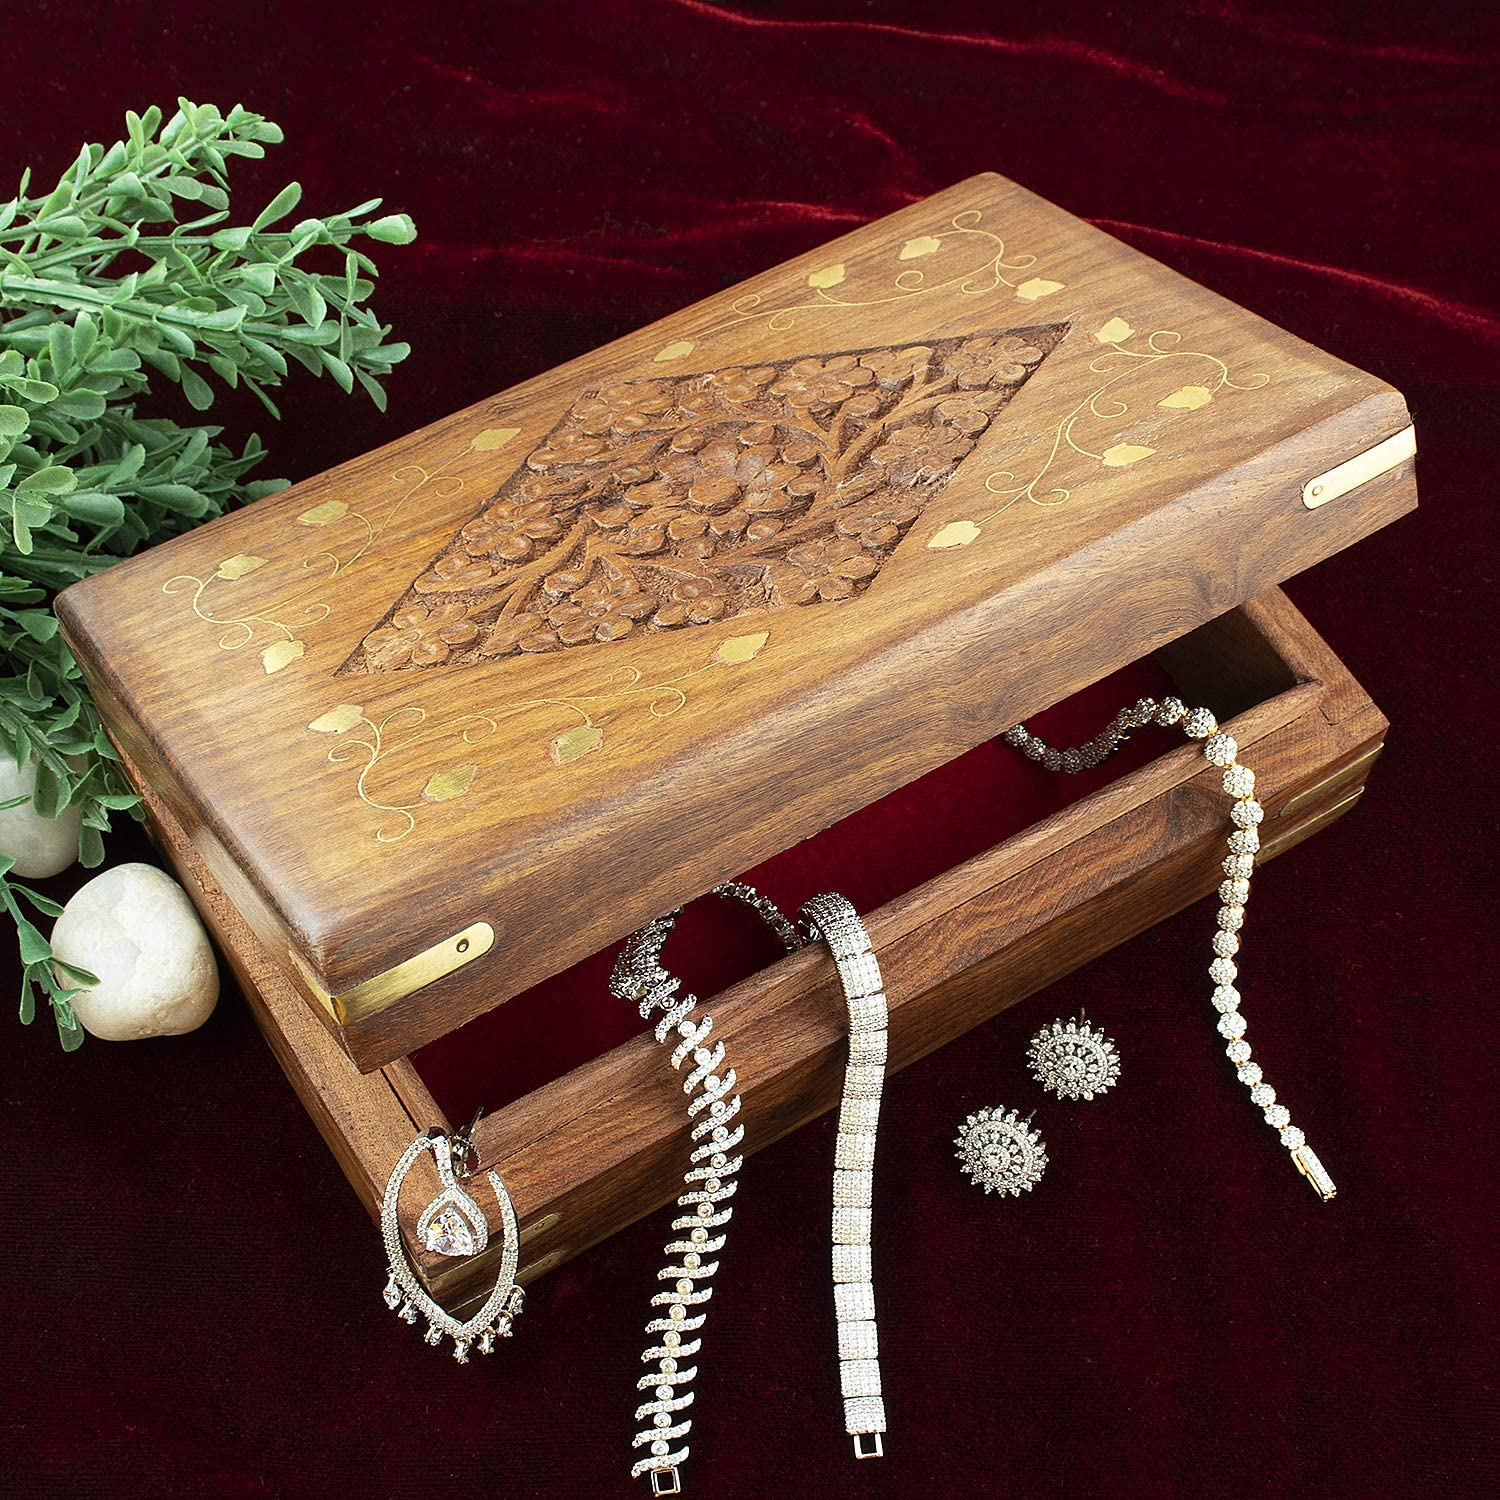 Aheli Wooden Jewelry Keepsake Trinket Box Multipurpose Storage Organizer with Intricate Floral Carvings Brass Inlay Home Decorative